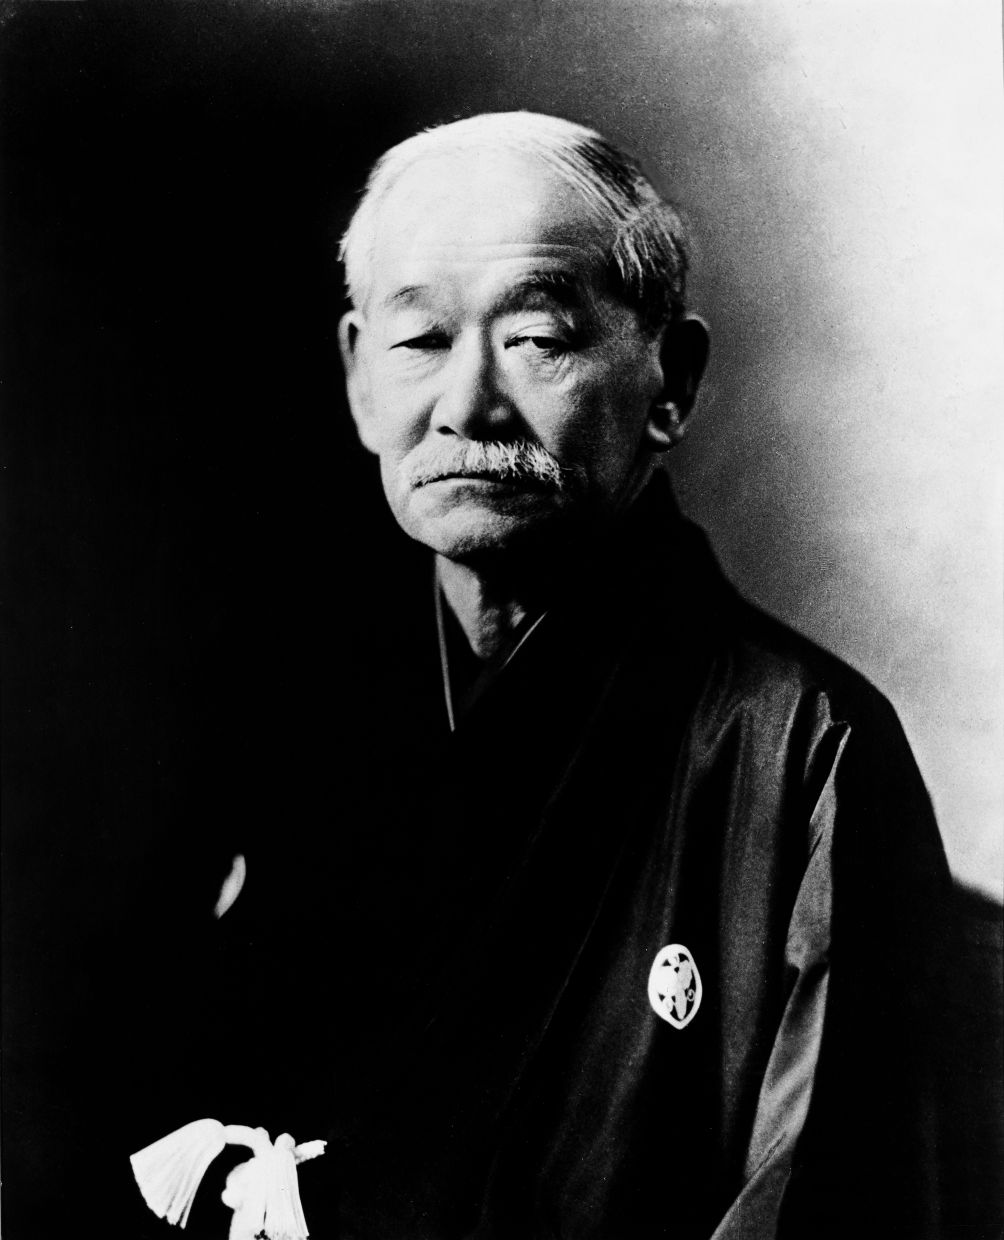 Judo's founder Jigoro Kano is said to be ahead of his time by empowering women to take up the sport. Photo: Wikimedia Commons